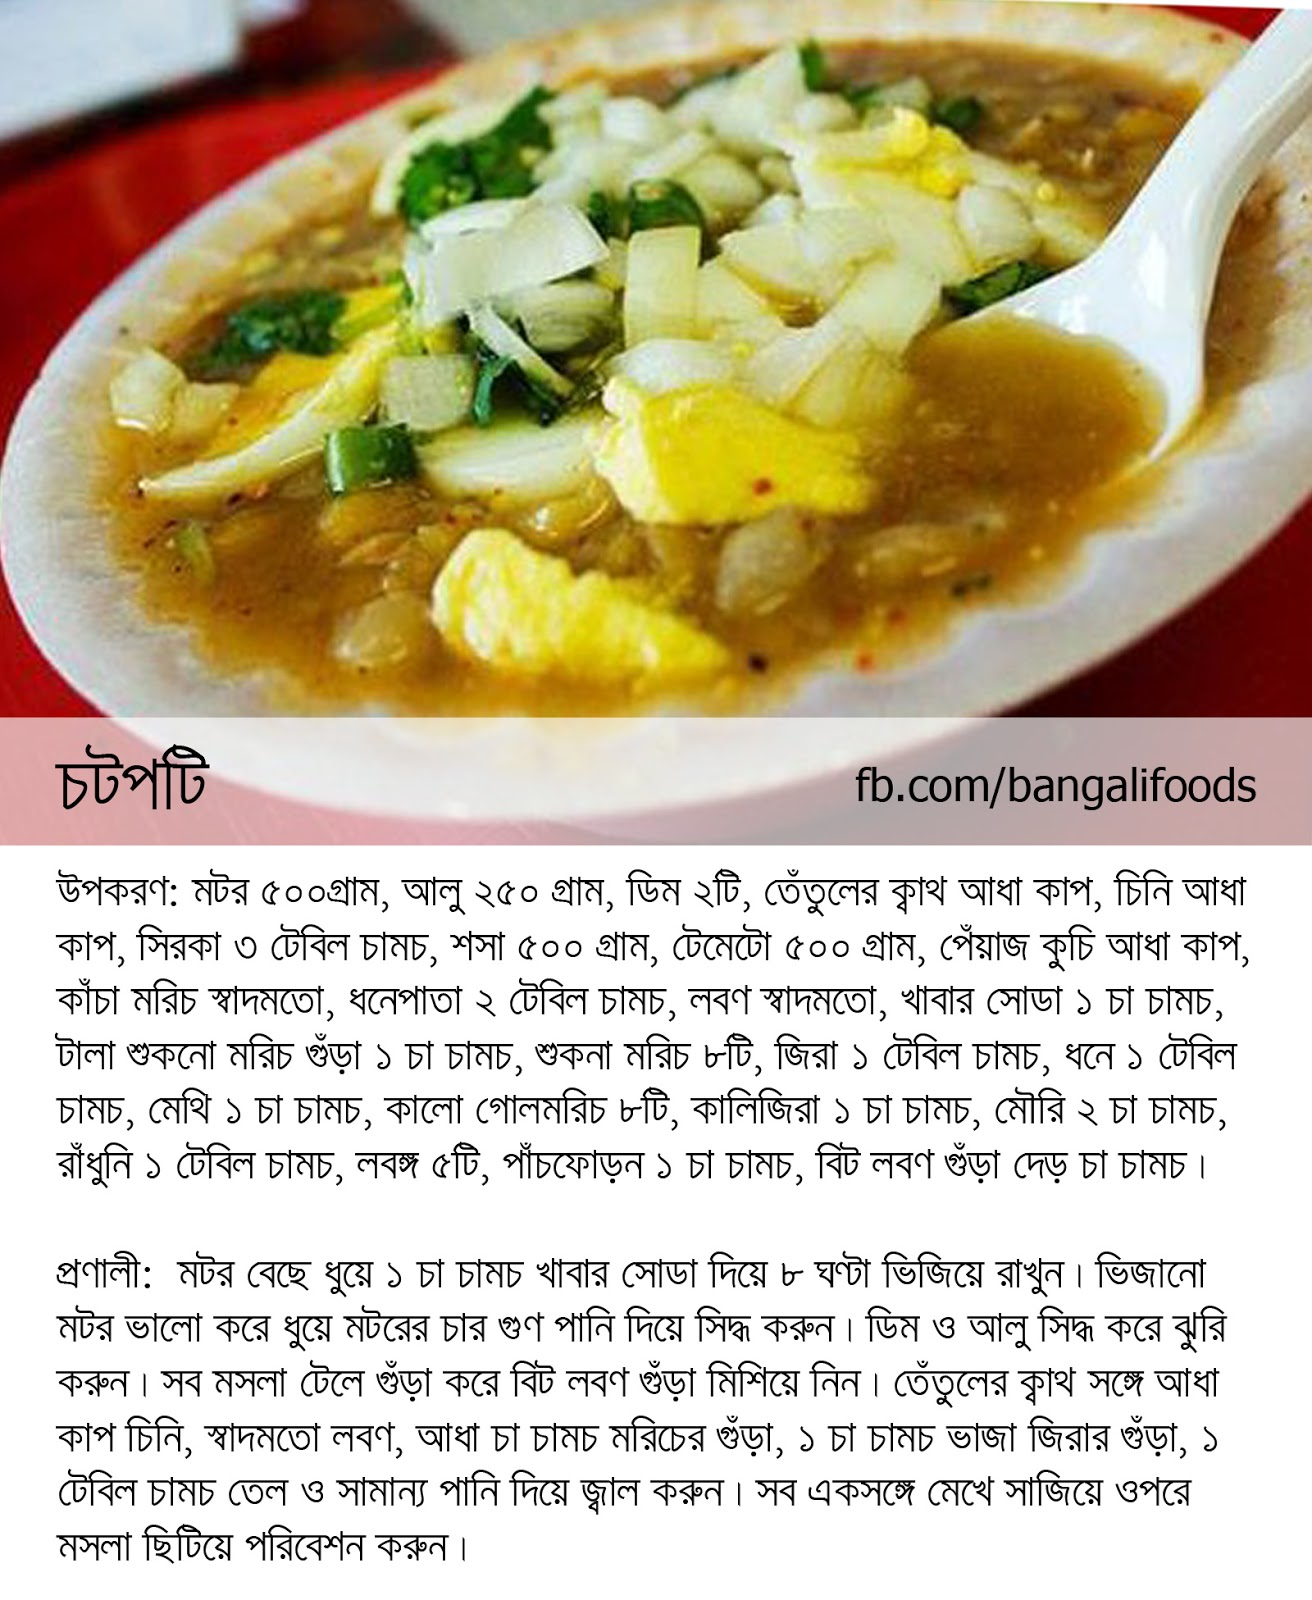 Bangali foods chotpoti recipe in bangla tasty and mouthwatering chotpoti recipe 03 in bengali forumfinder Image collections